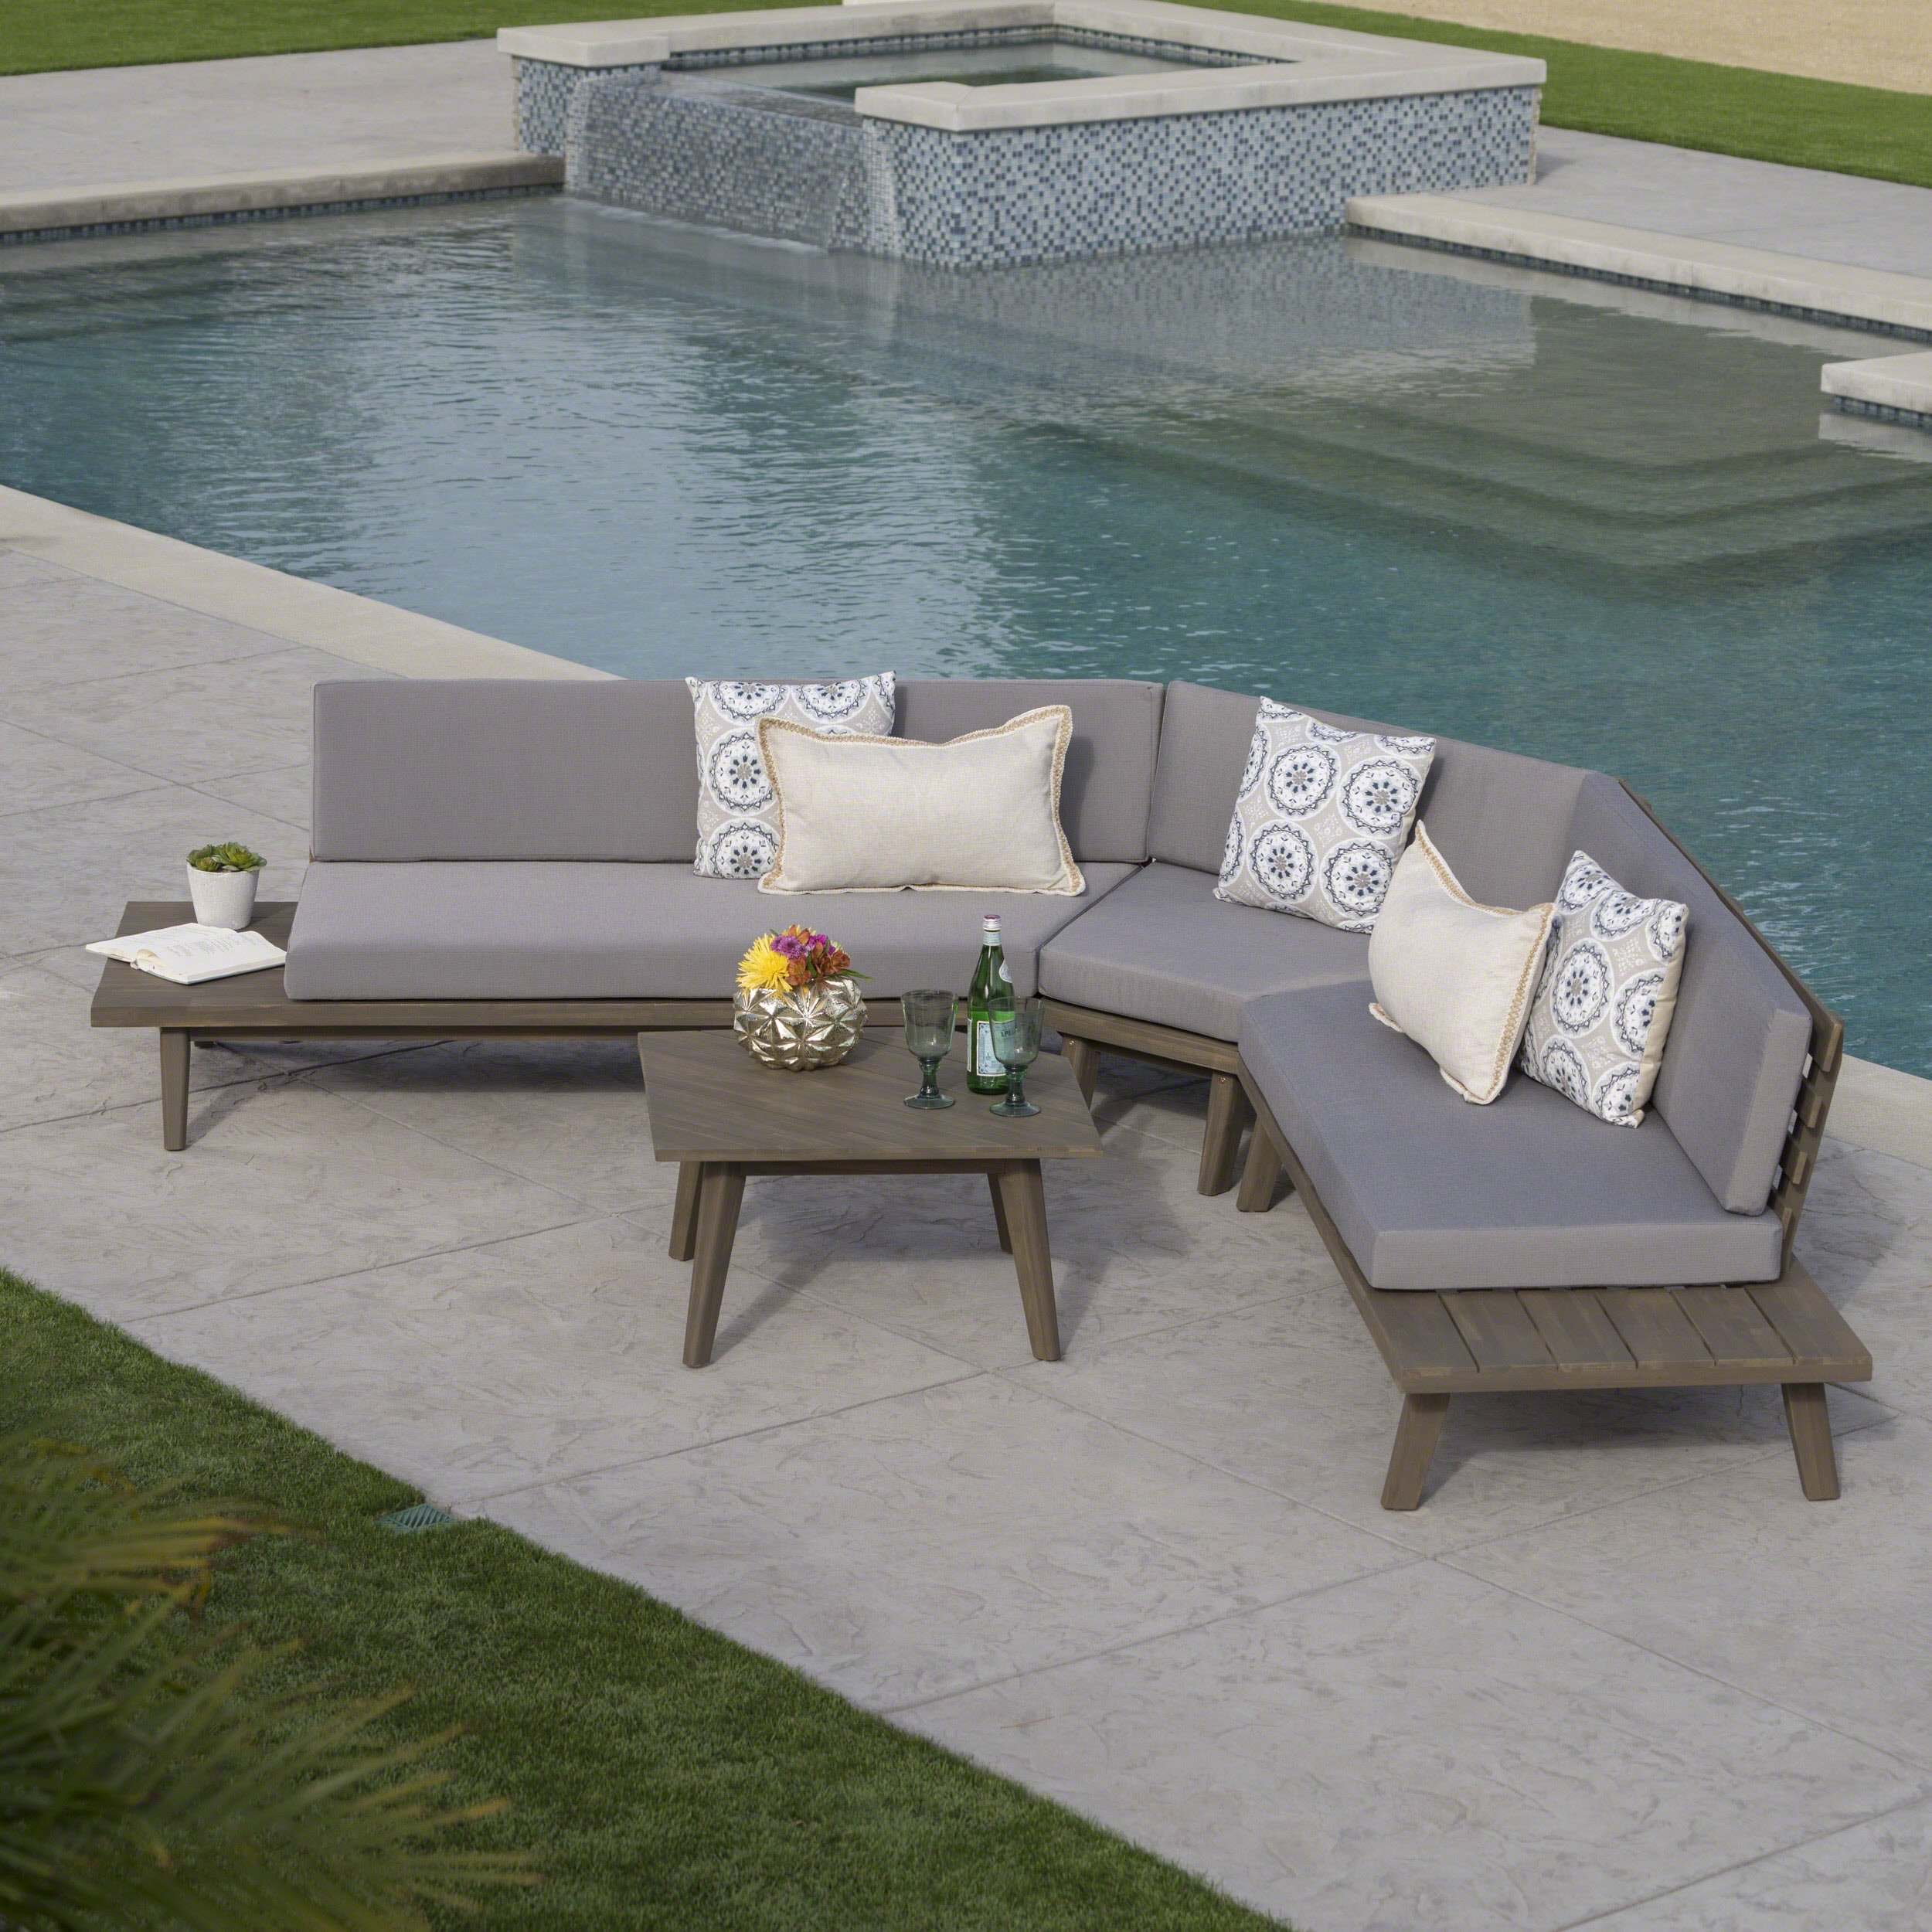 hillside outdoor v shaped 4 piece acacia wood sectional sofa set in rh pinterest com